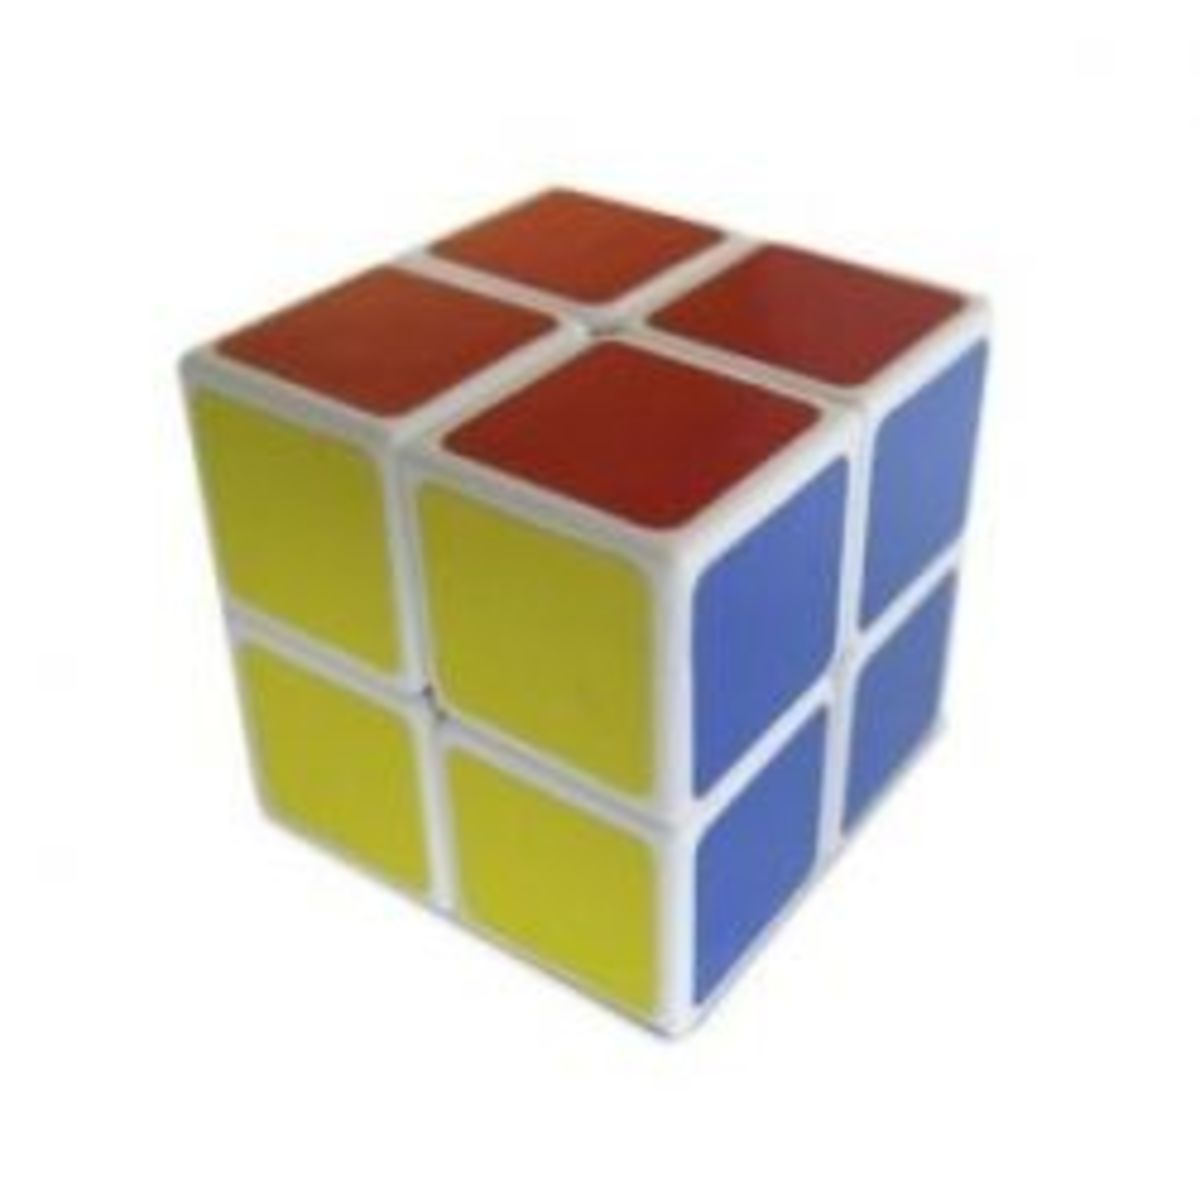 How to Solve a 2x2x2 Rubik's Cube Quickly